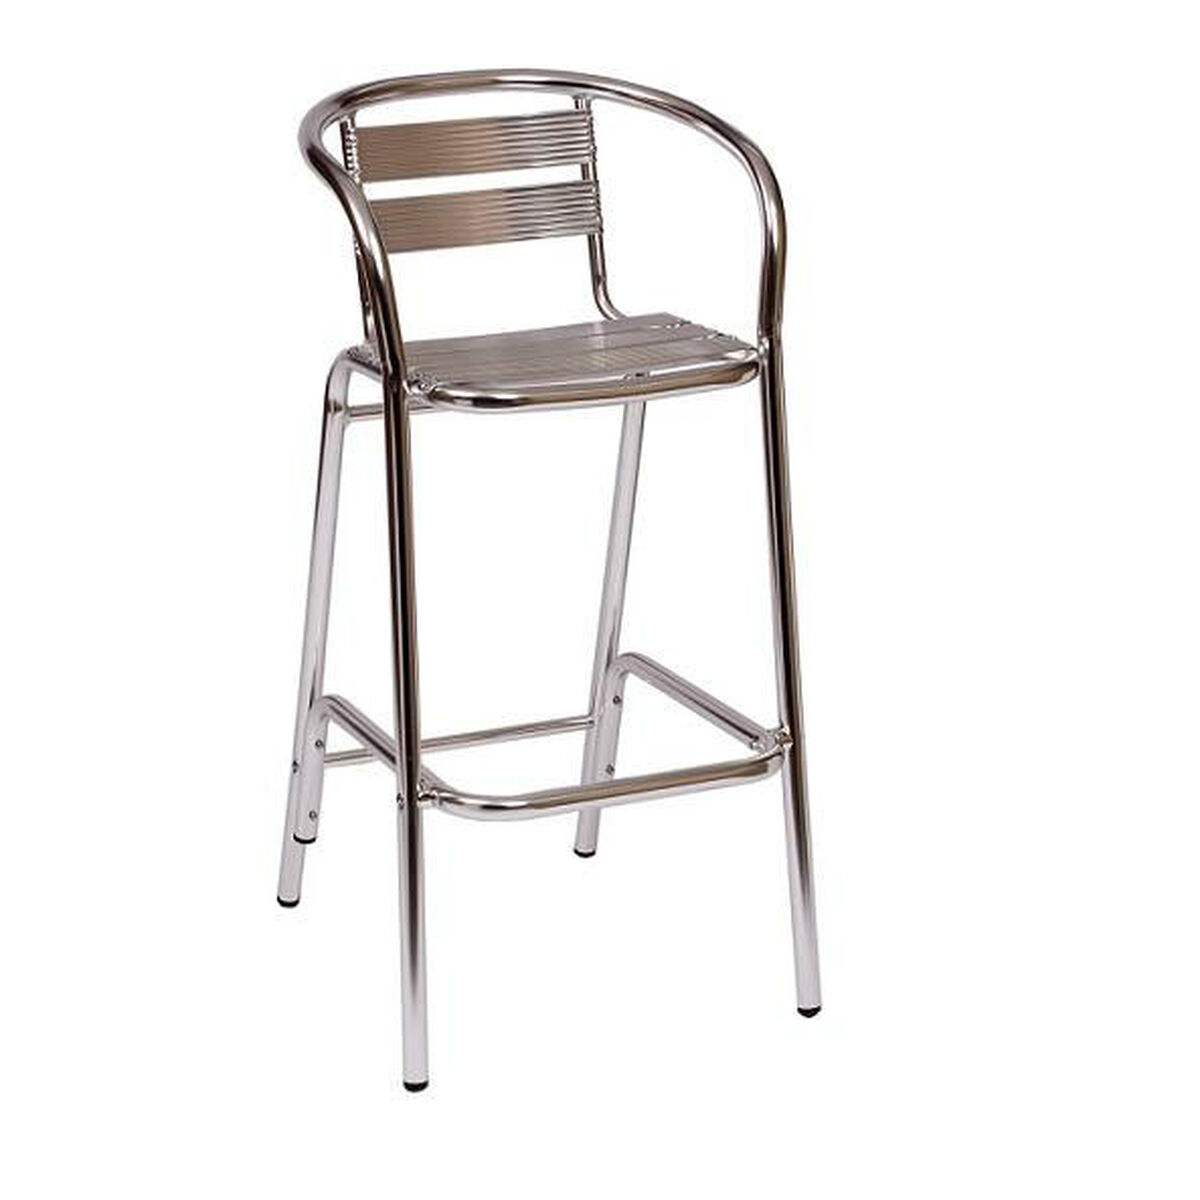 Our parma outdoor aluminum barstool arms is on sale now